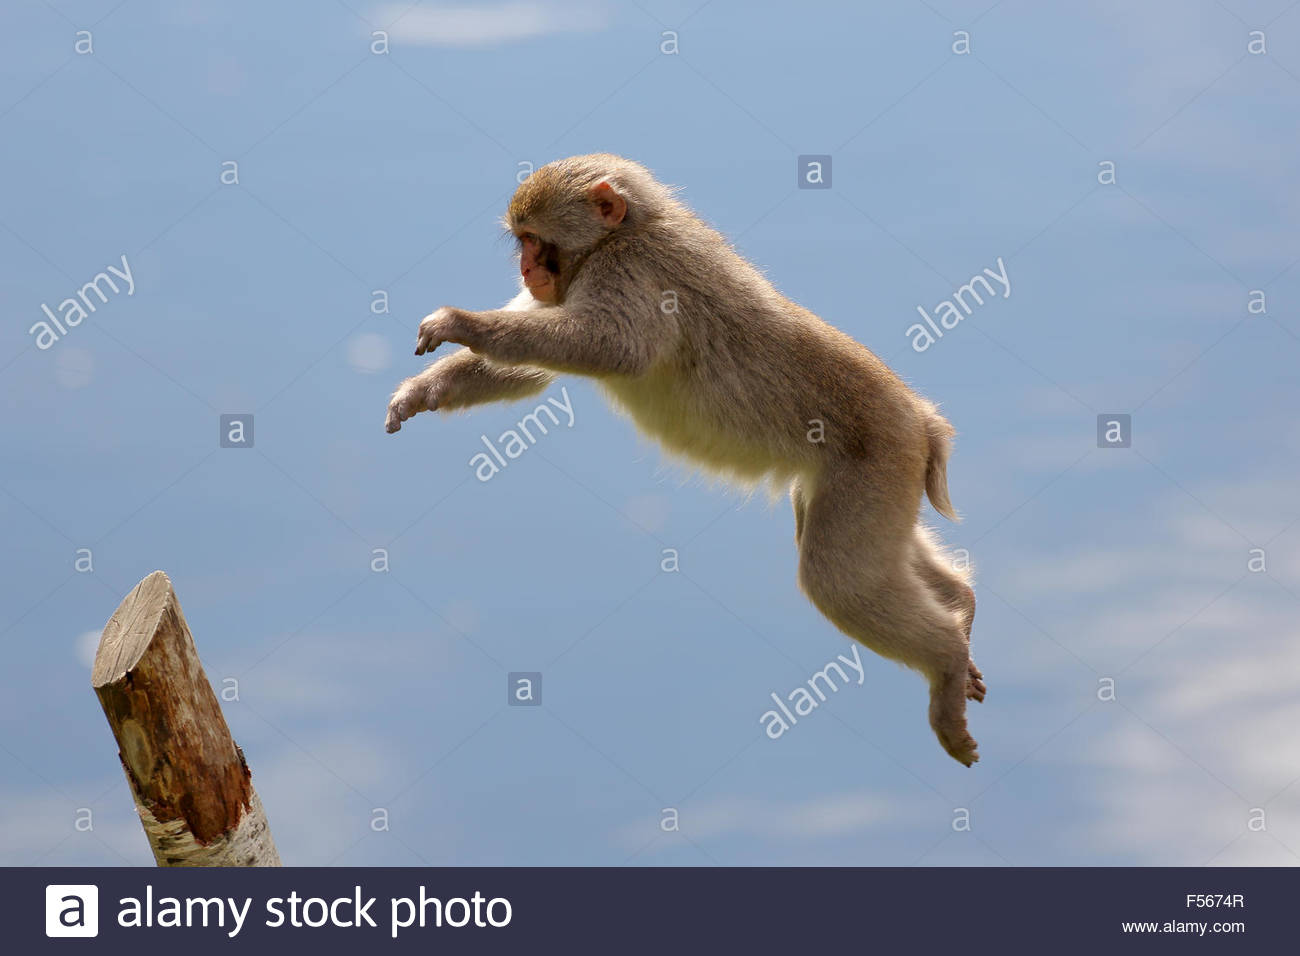 A Japanese macaque photographed in mid air leaping across water to get to a tree stump. - Stock Image